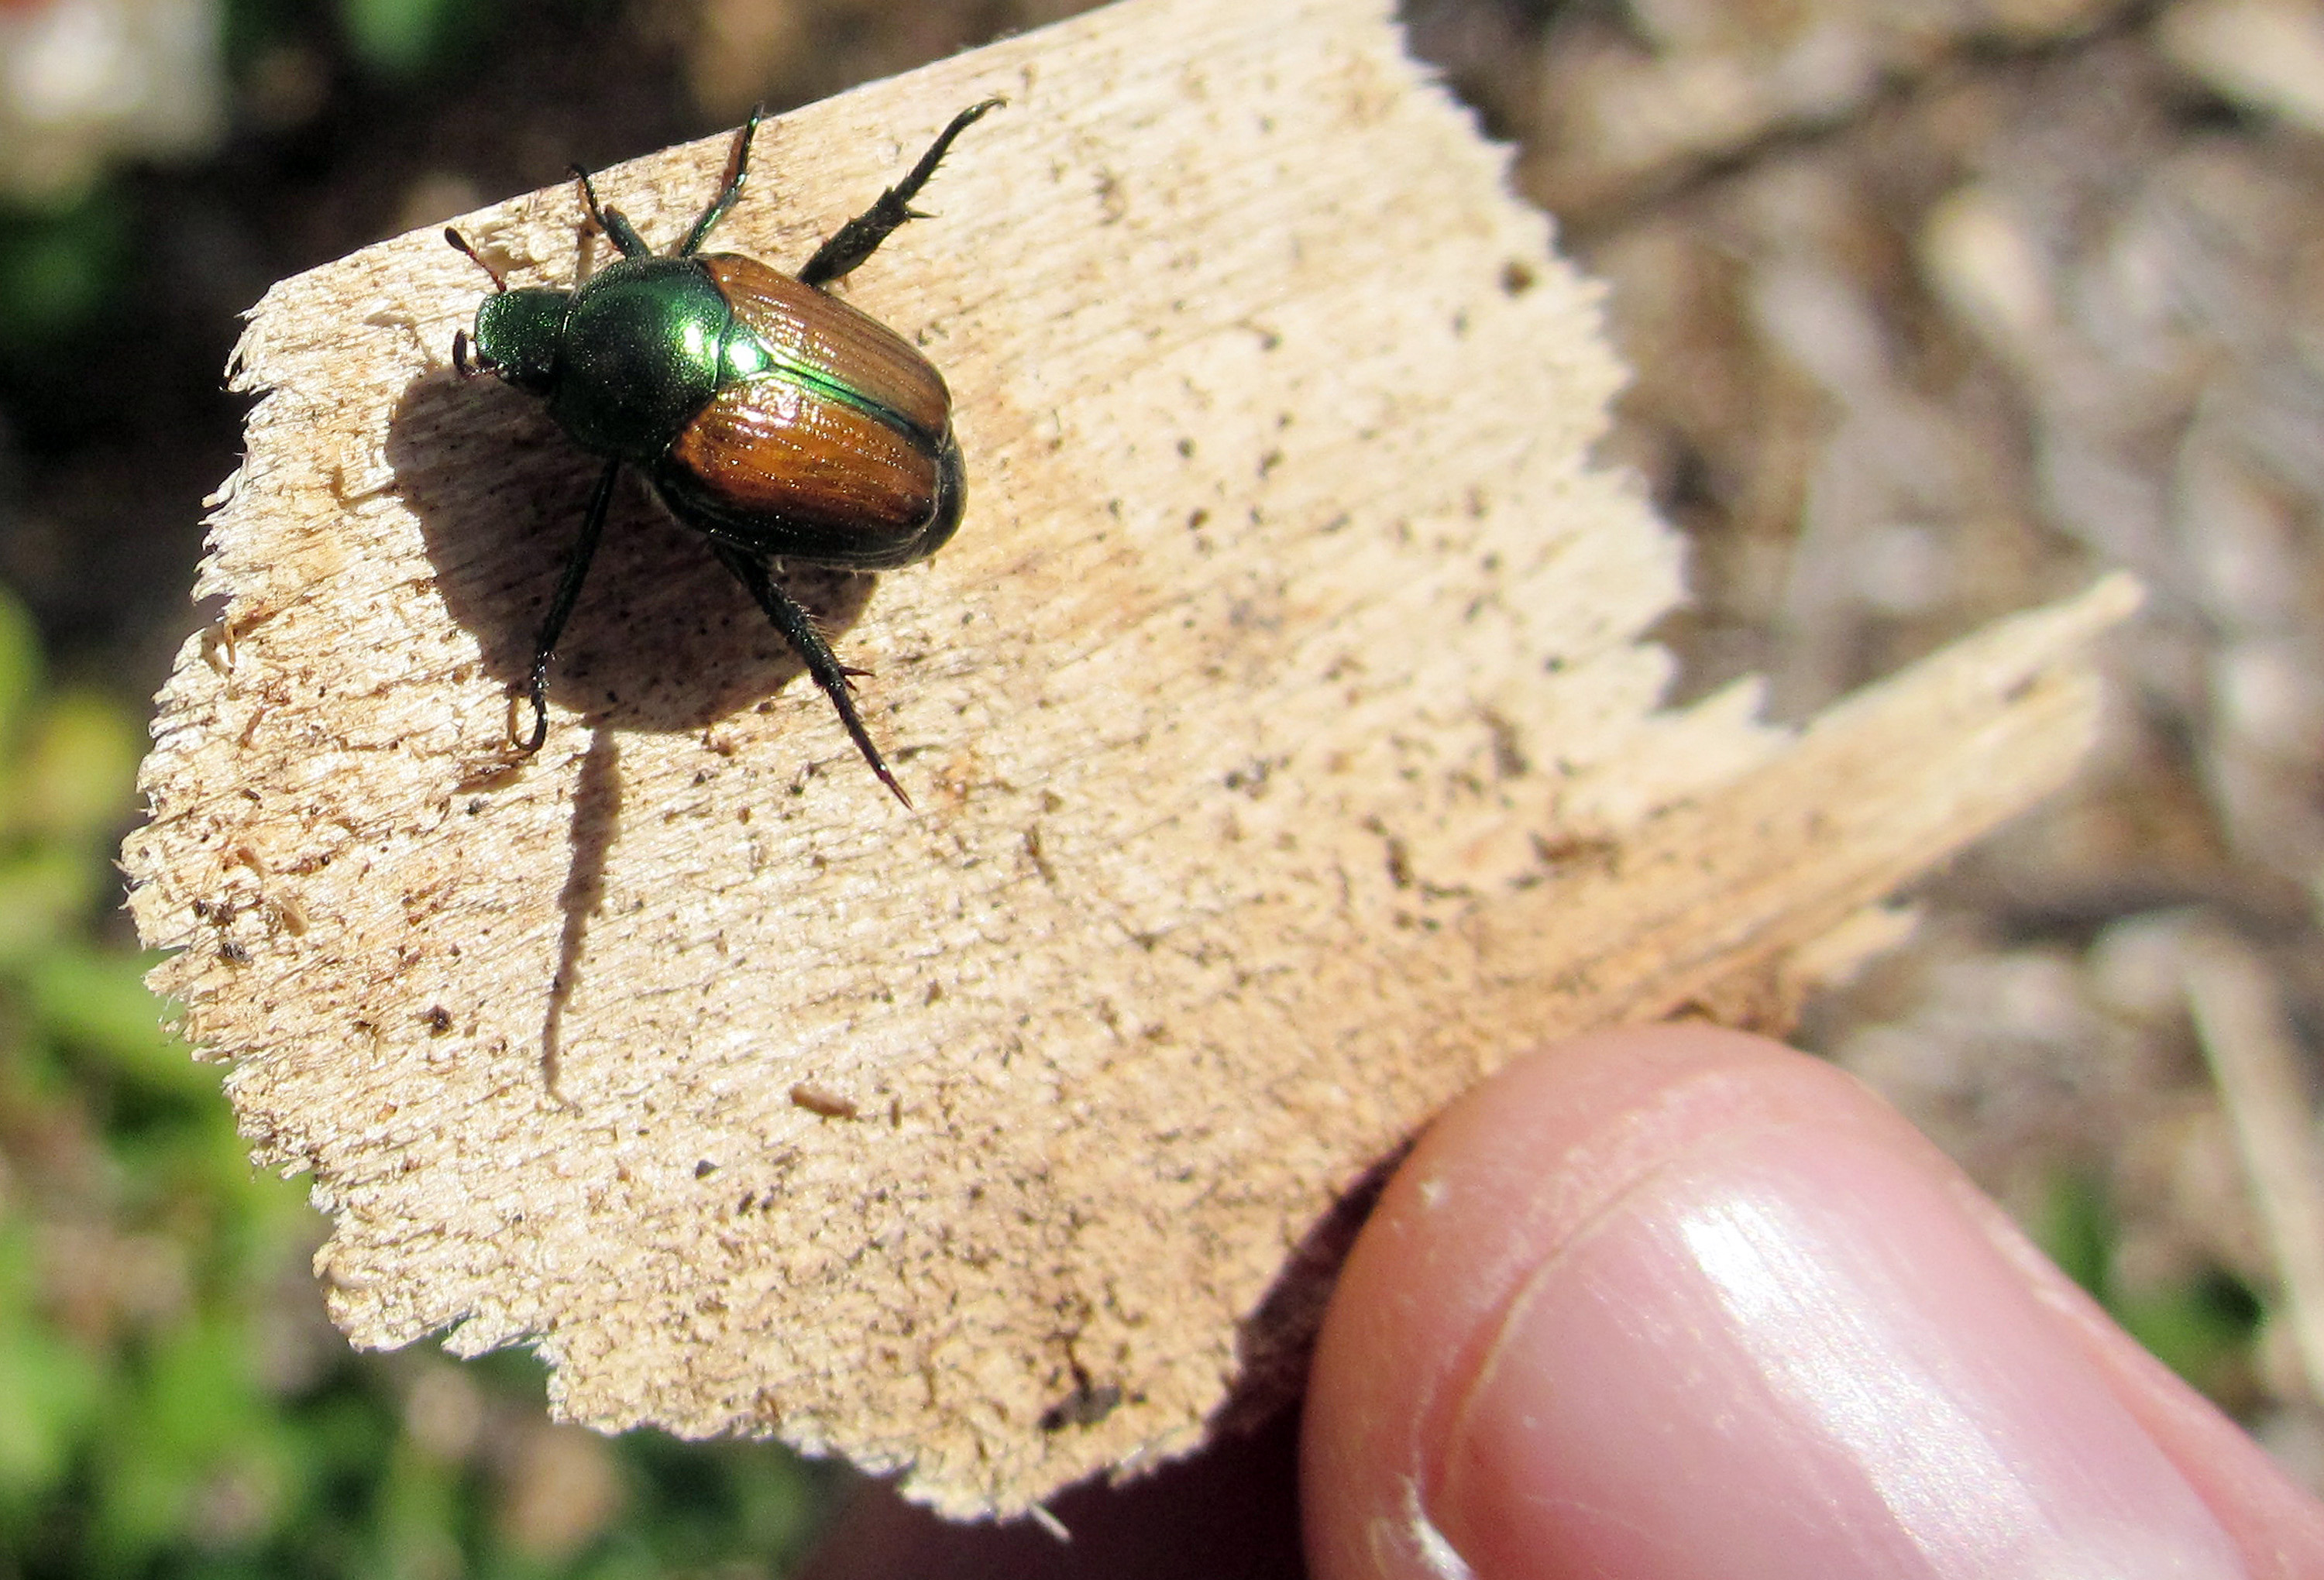 Garden Plot: It's time to beat the beetles!